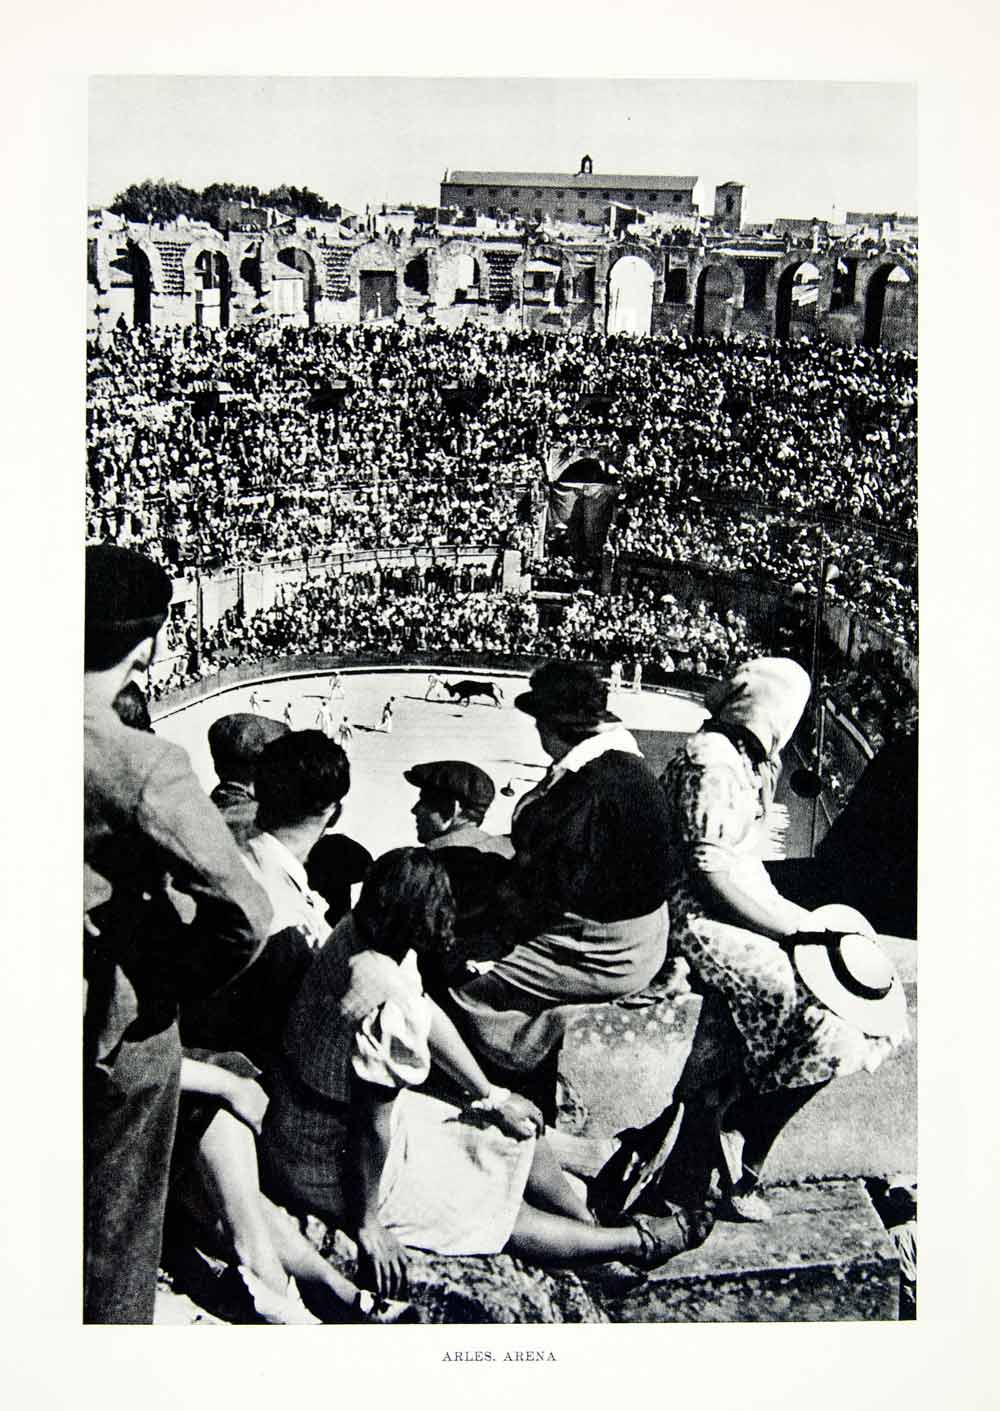 1952 Rotogravure Arles Arena France Roman Amphitheater Bullfighting Crowd XGIC3